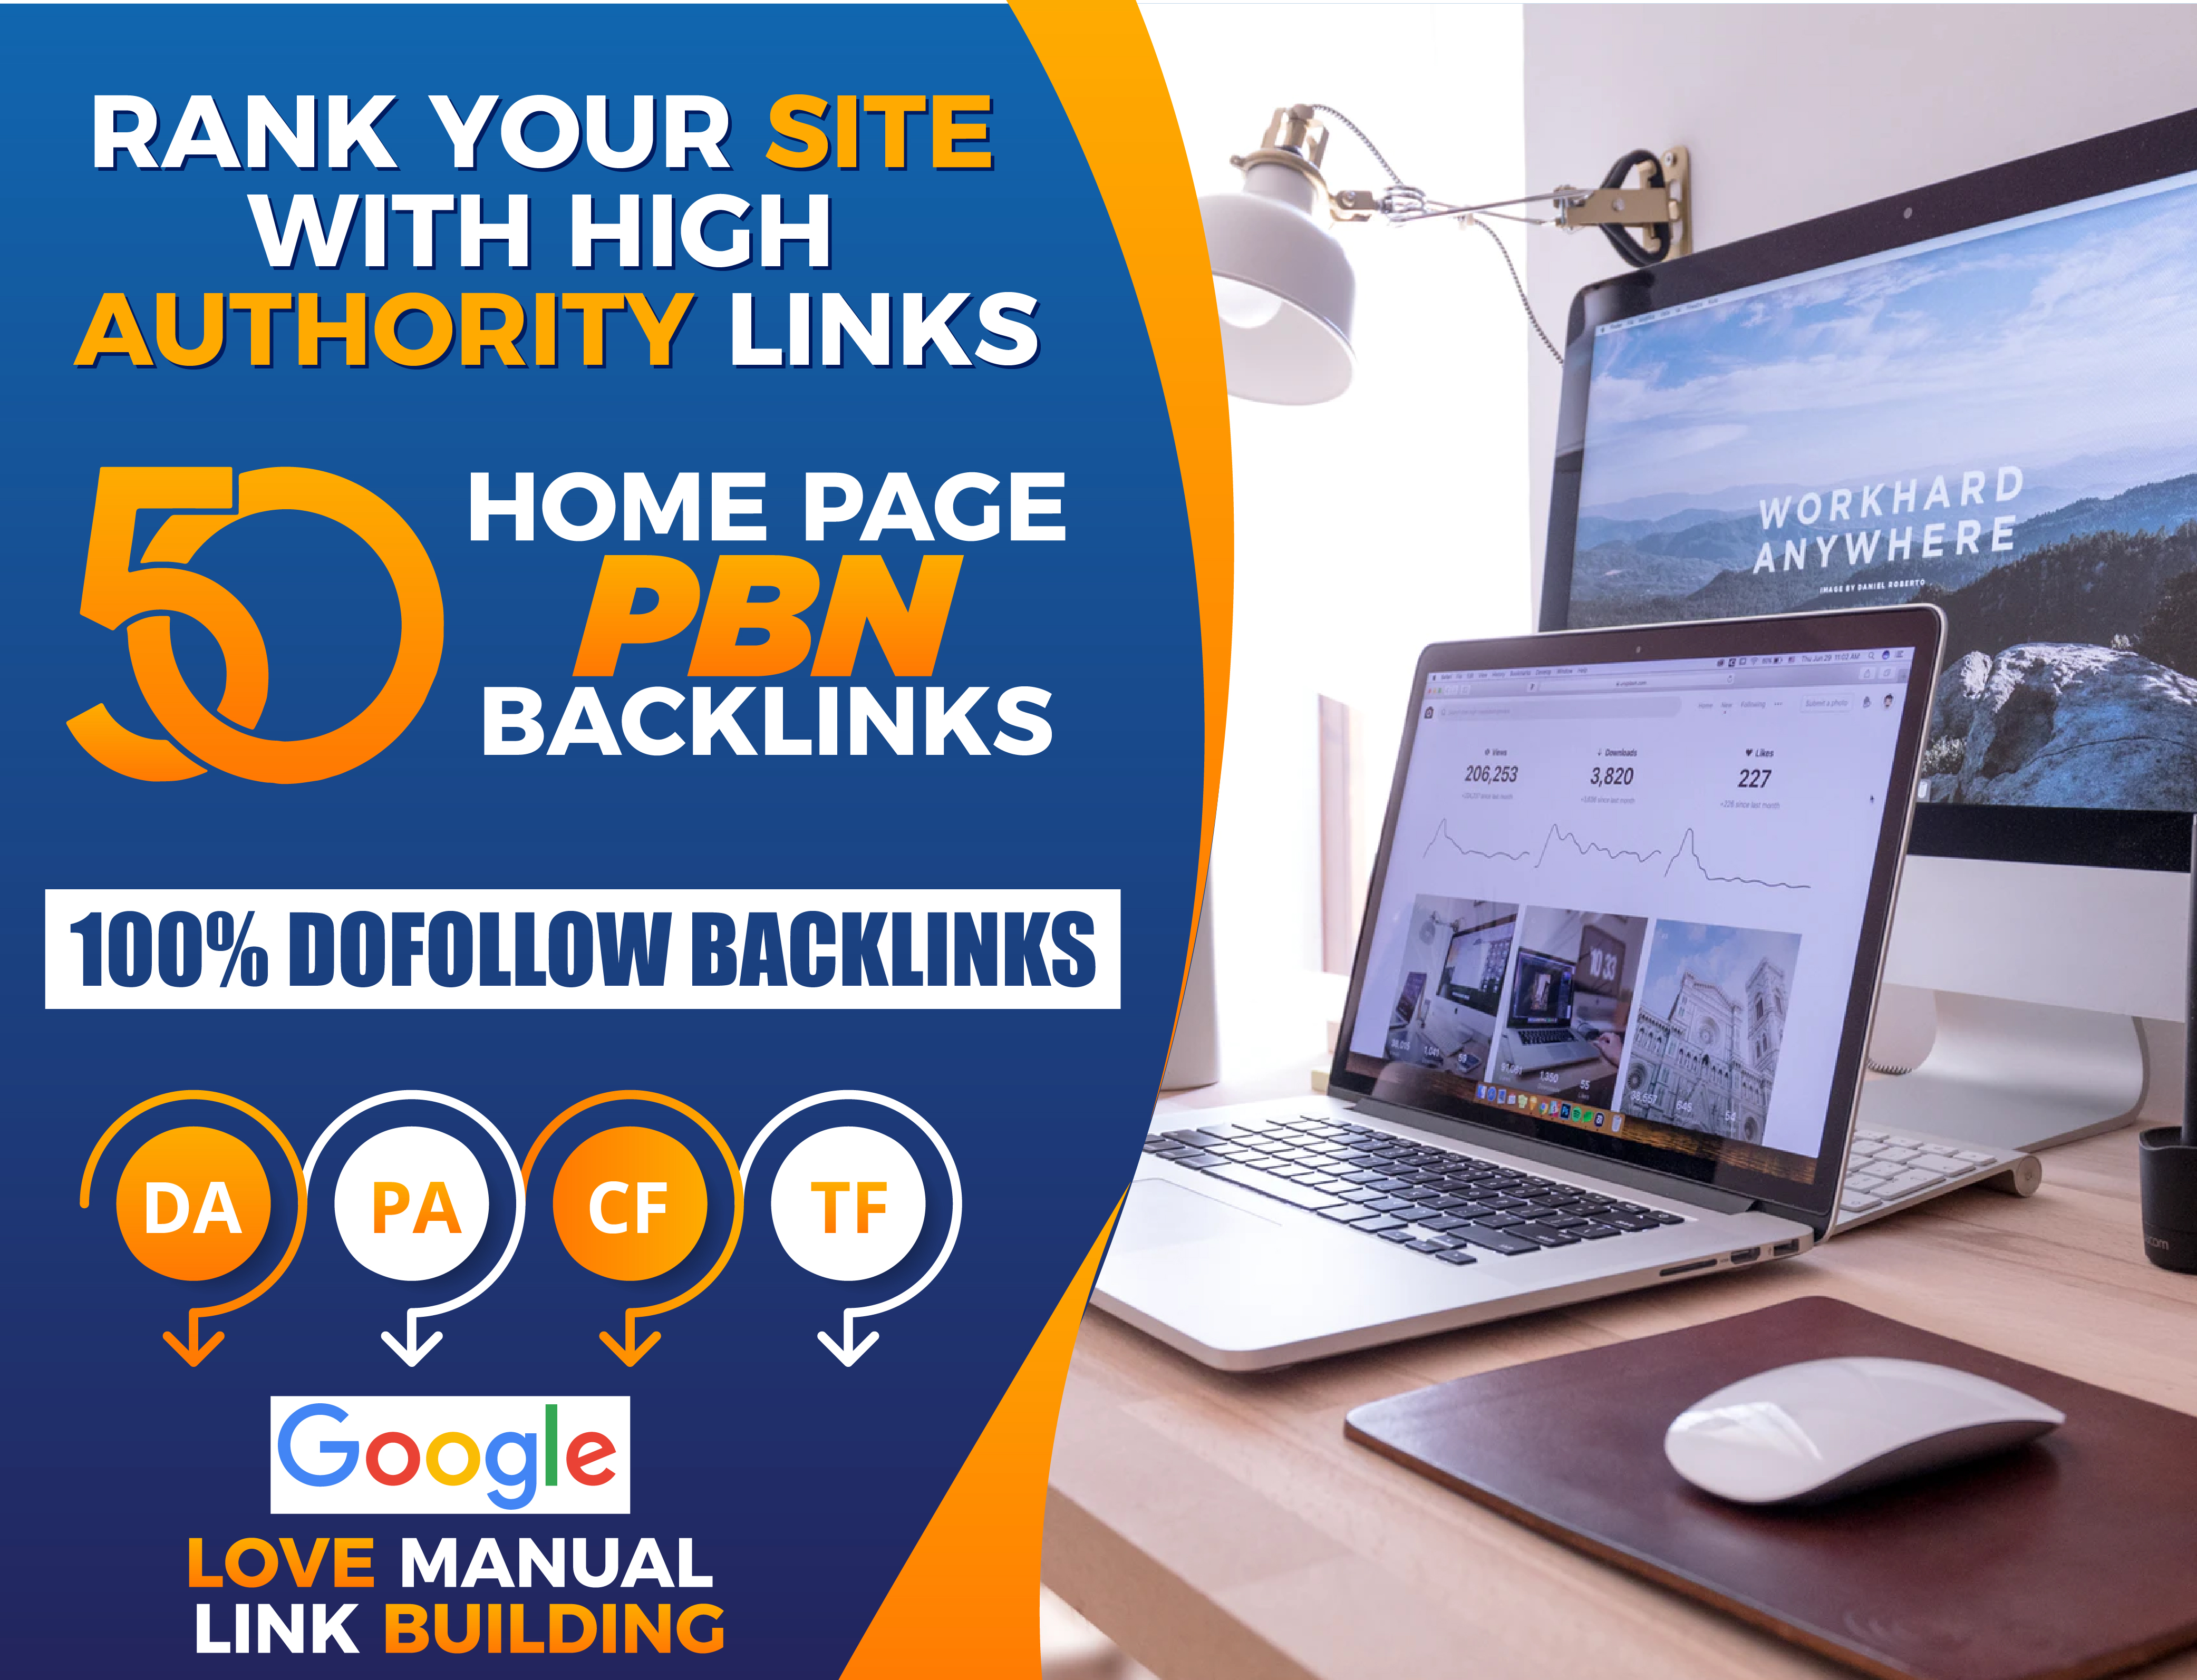 Build 50 high da pa tf cf homepage pbn backlinks permanent posts